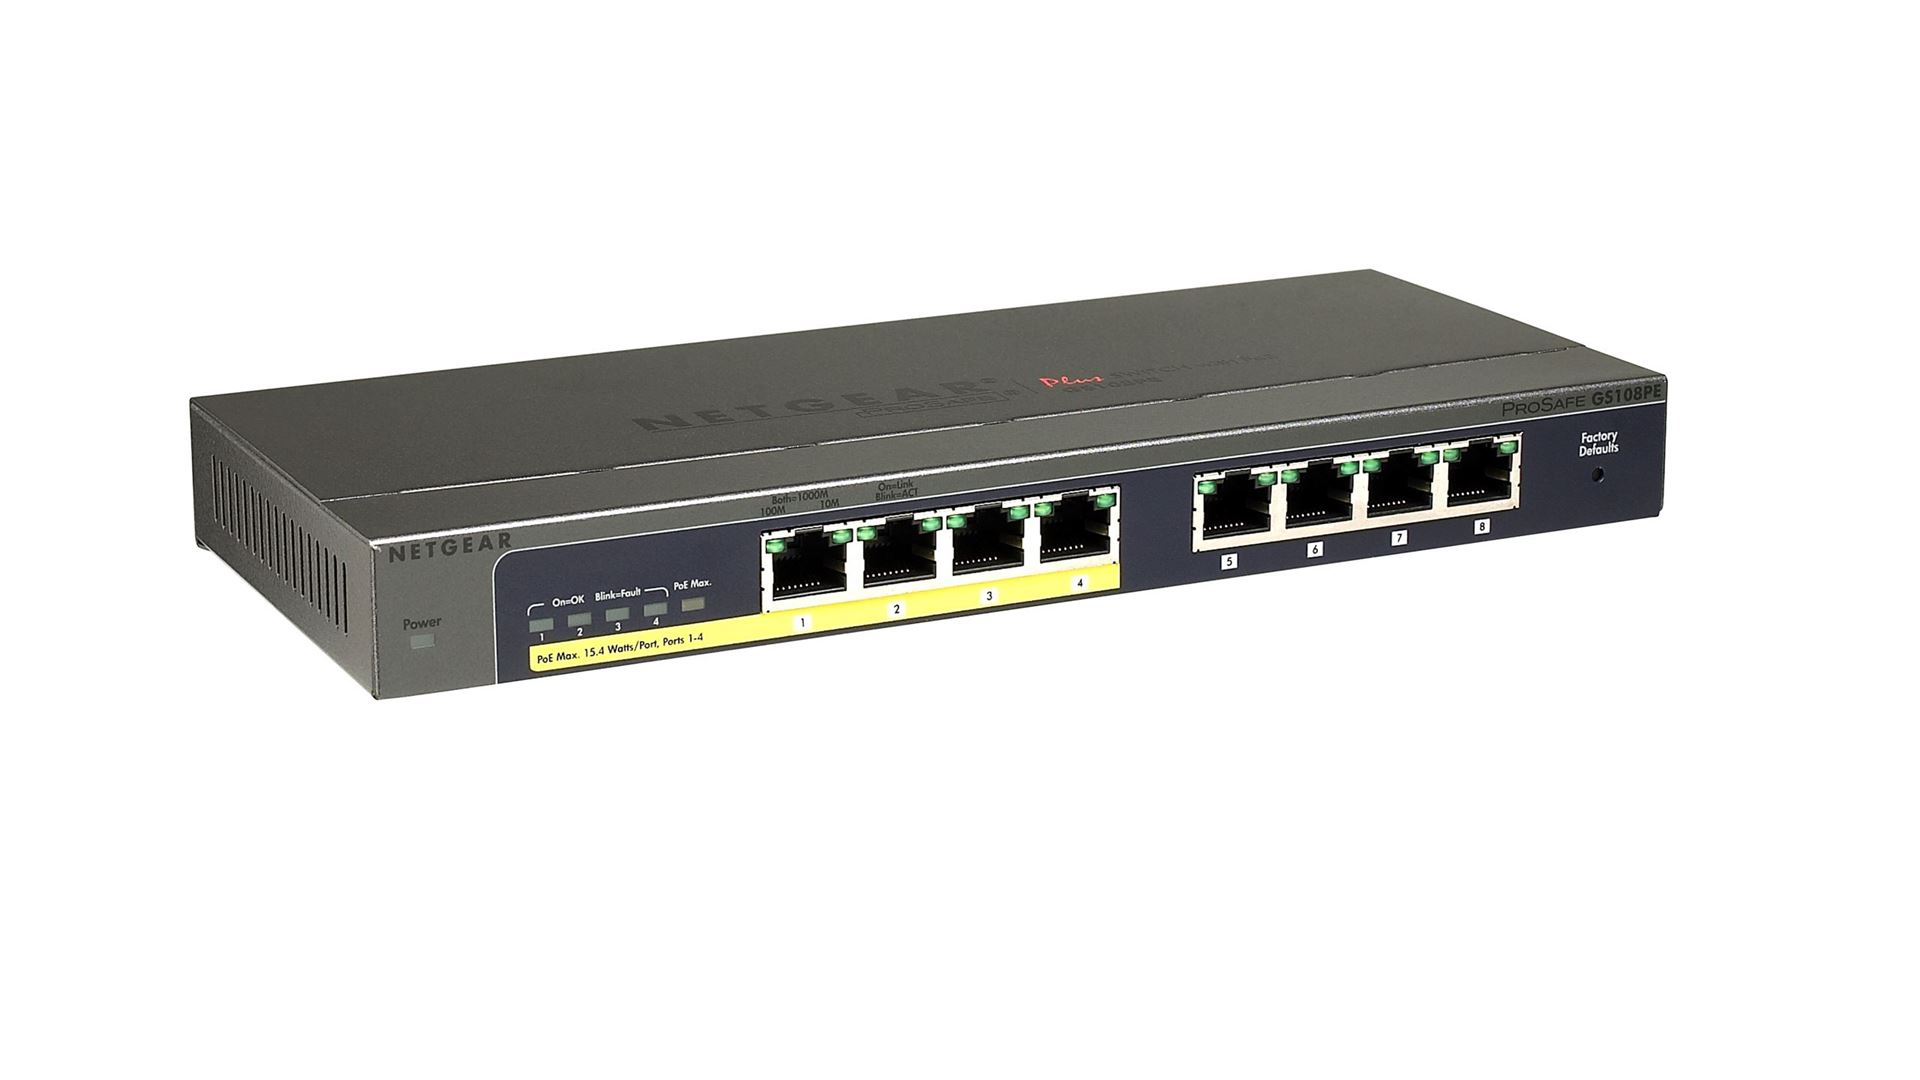 8-Port Gigabit Ethernet PoE Smart Managed Plus Switch with 4 PoE Ports (53W) - Right